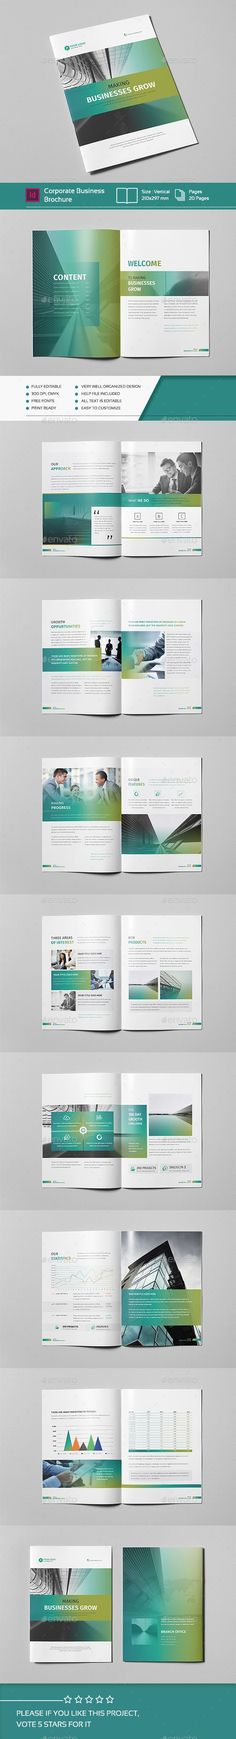 Corporate Business Brochure 20 Pages A4 Template InDesign INDD #design Download: http://graphicriver.net/item/corporate-business-brochure-20-vol02/14174521?ref=ksioks: